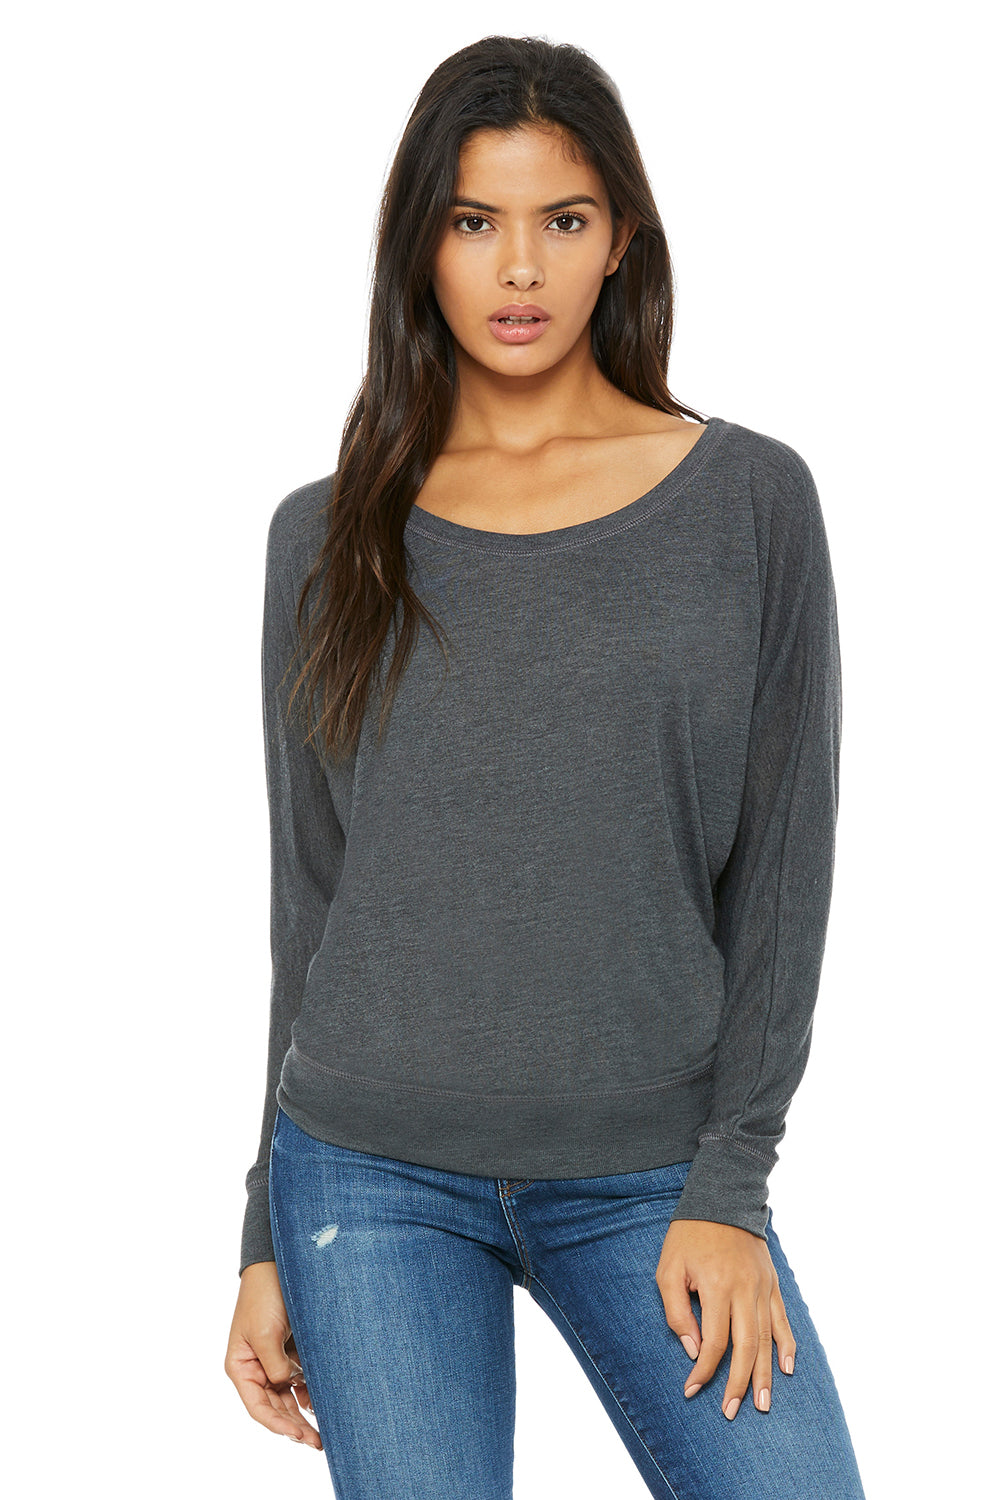 Bella + Canvas 8850 Womens Flowy Off Shoulder Long Sleeve Wide Neck T-Shirt Heather Dark Grey Front